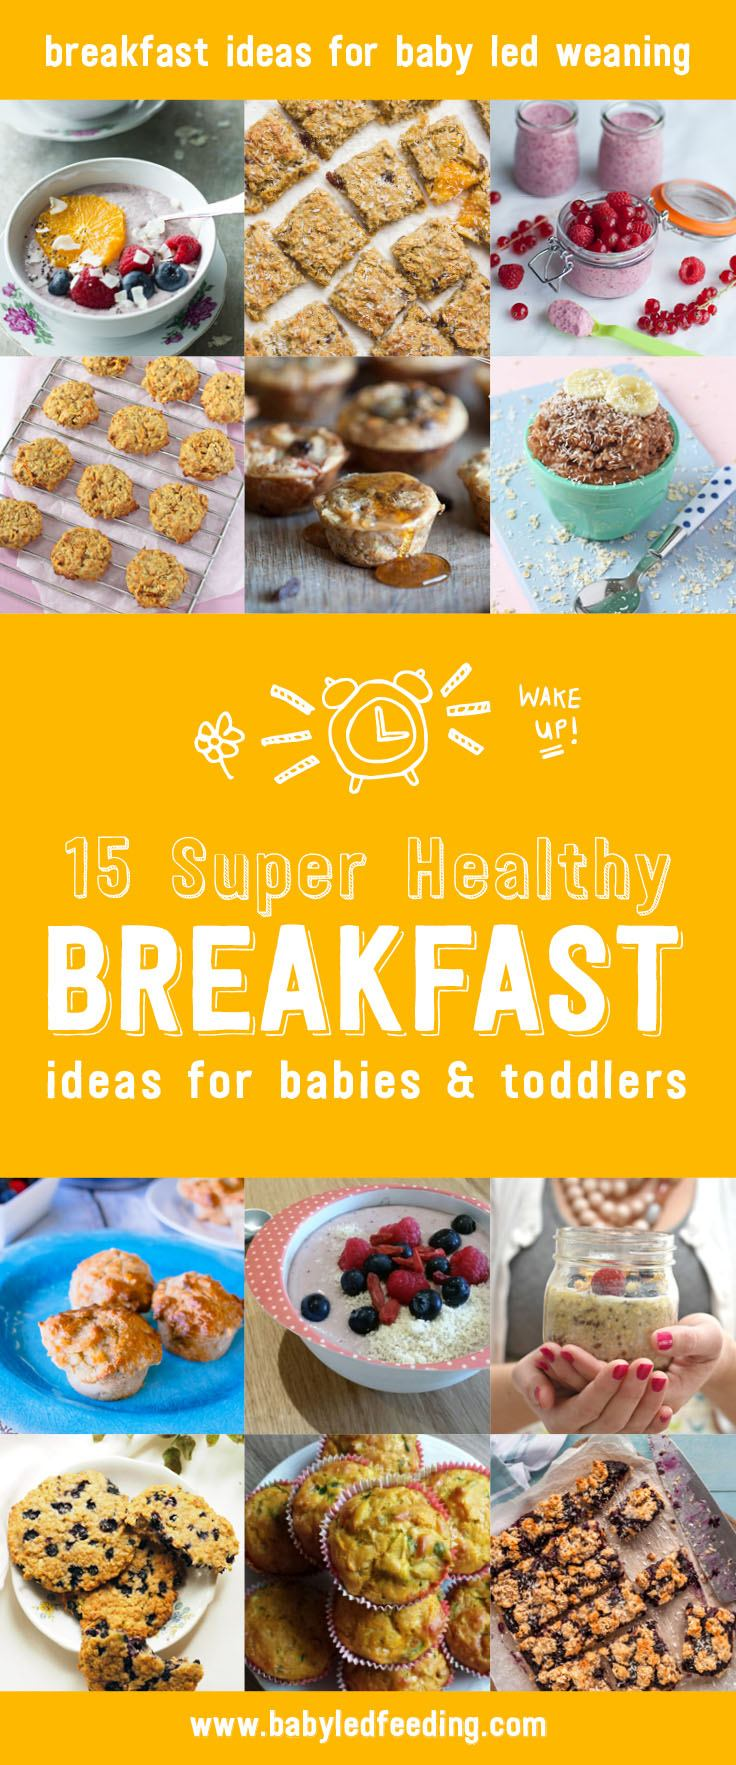 15 super healthy breakfast ideas for baby led weaning and toddlers. Most are refined sugar free and low salt. These easy breakfast recipe can be make ahead or last minute. Nutritious breakfast cookies, freezer friendly muffins and veggie loaded pancakes, fast and easy oatmeal ideas, make ahead breakfast pudding, and much more! All nutritious and all delicious! #breakfastrecipe #babyledweaning #pickyeater #breakfast #healthybreakfast #healthyrecipe